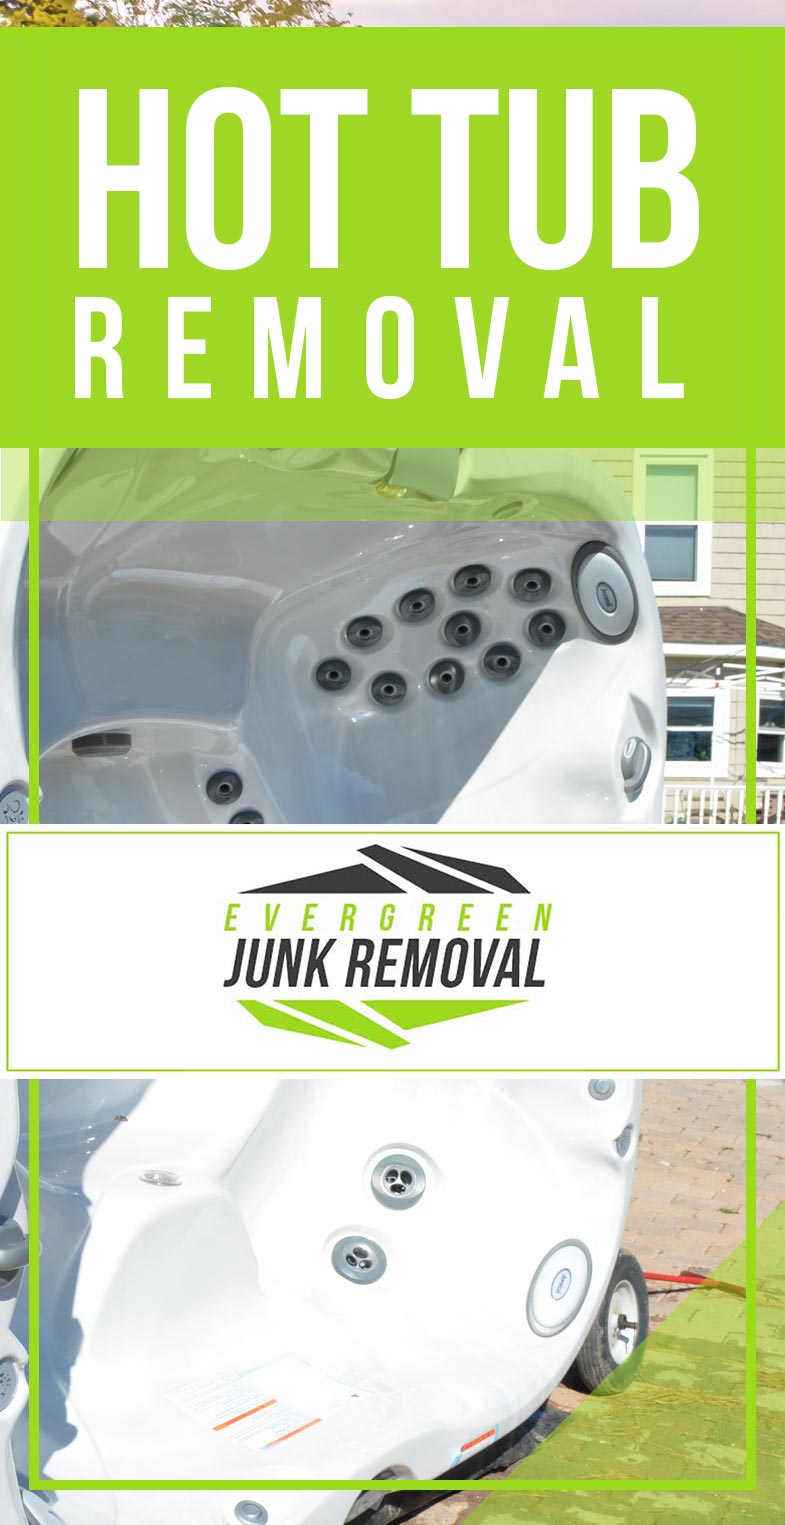 Norwalk Hot Tub Removal